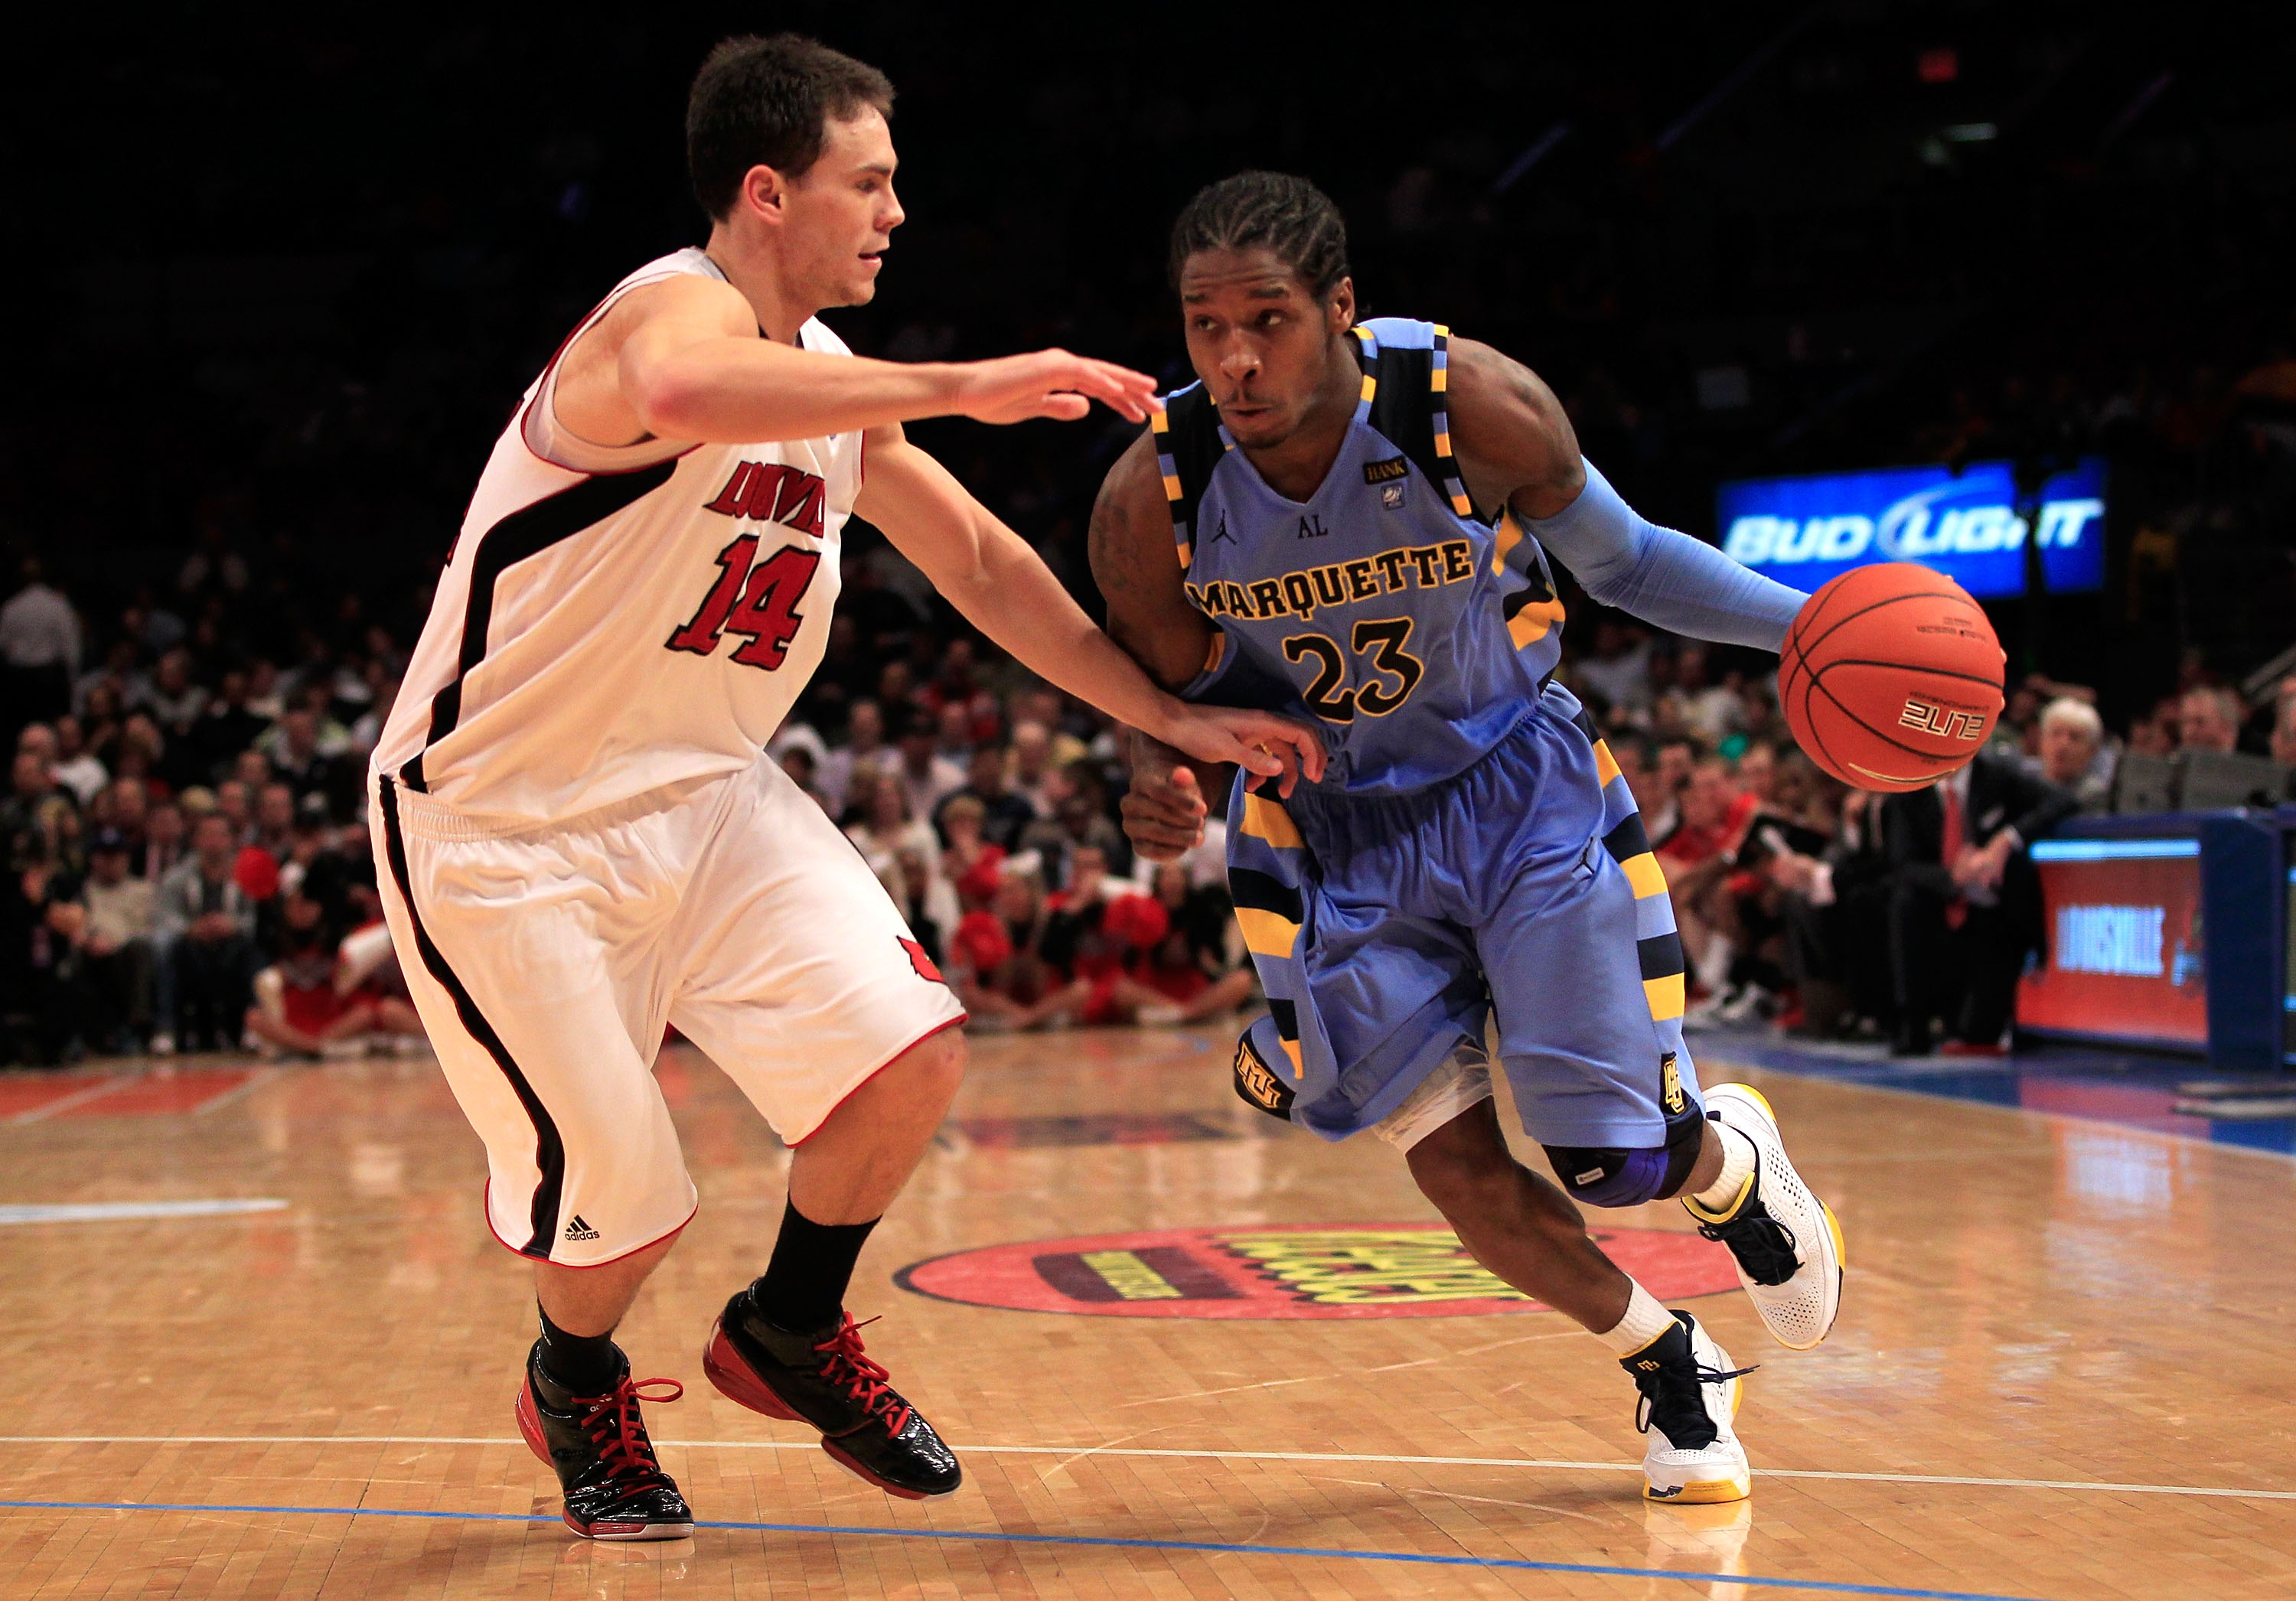 NEW YORK, NY - MARCH 10: Dwight Buycks #23 of the Marquette Golden Eagles drives with the ball against Kyle Kuric #14 of the Louisville Cardinals during the quarterfinals of the 2011 Big East Men's Basketball Tournament presented by American Eagle Outfitt